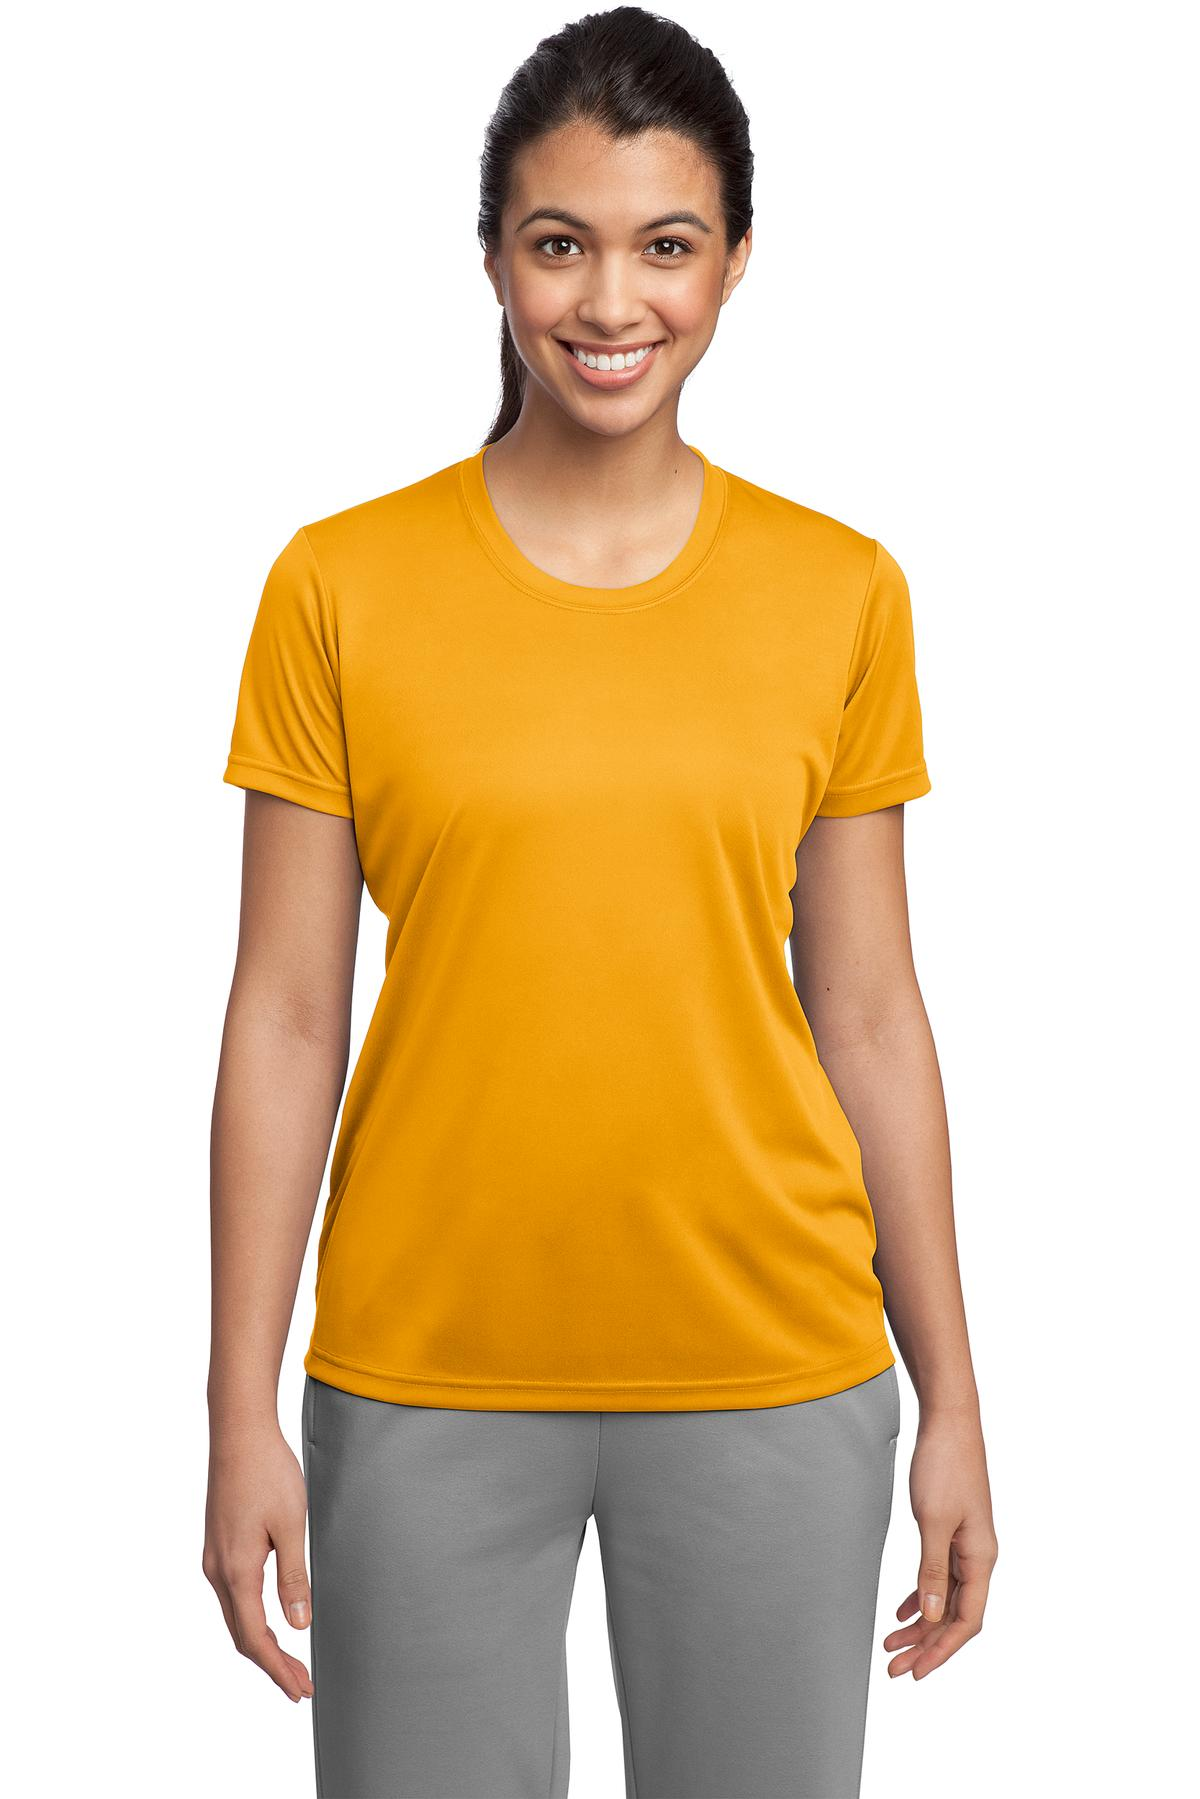 Sport-Tek ®  Ladies PosiCharge ®  Competitor™ Tee. LST350 - Gold